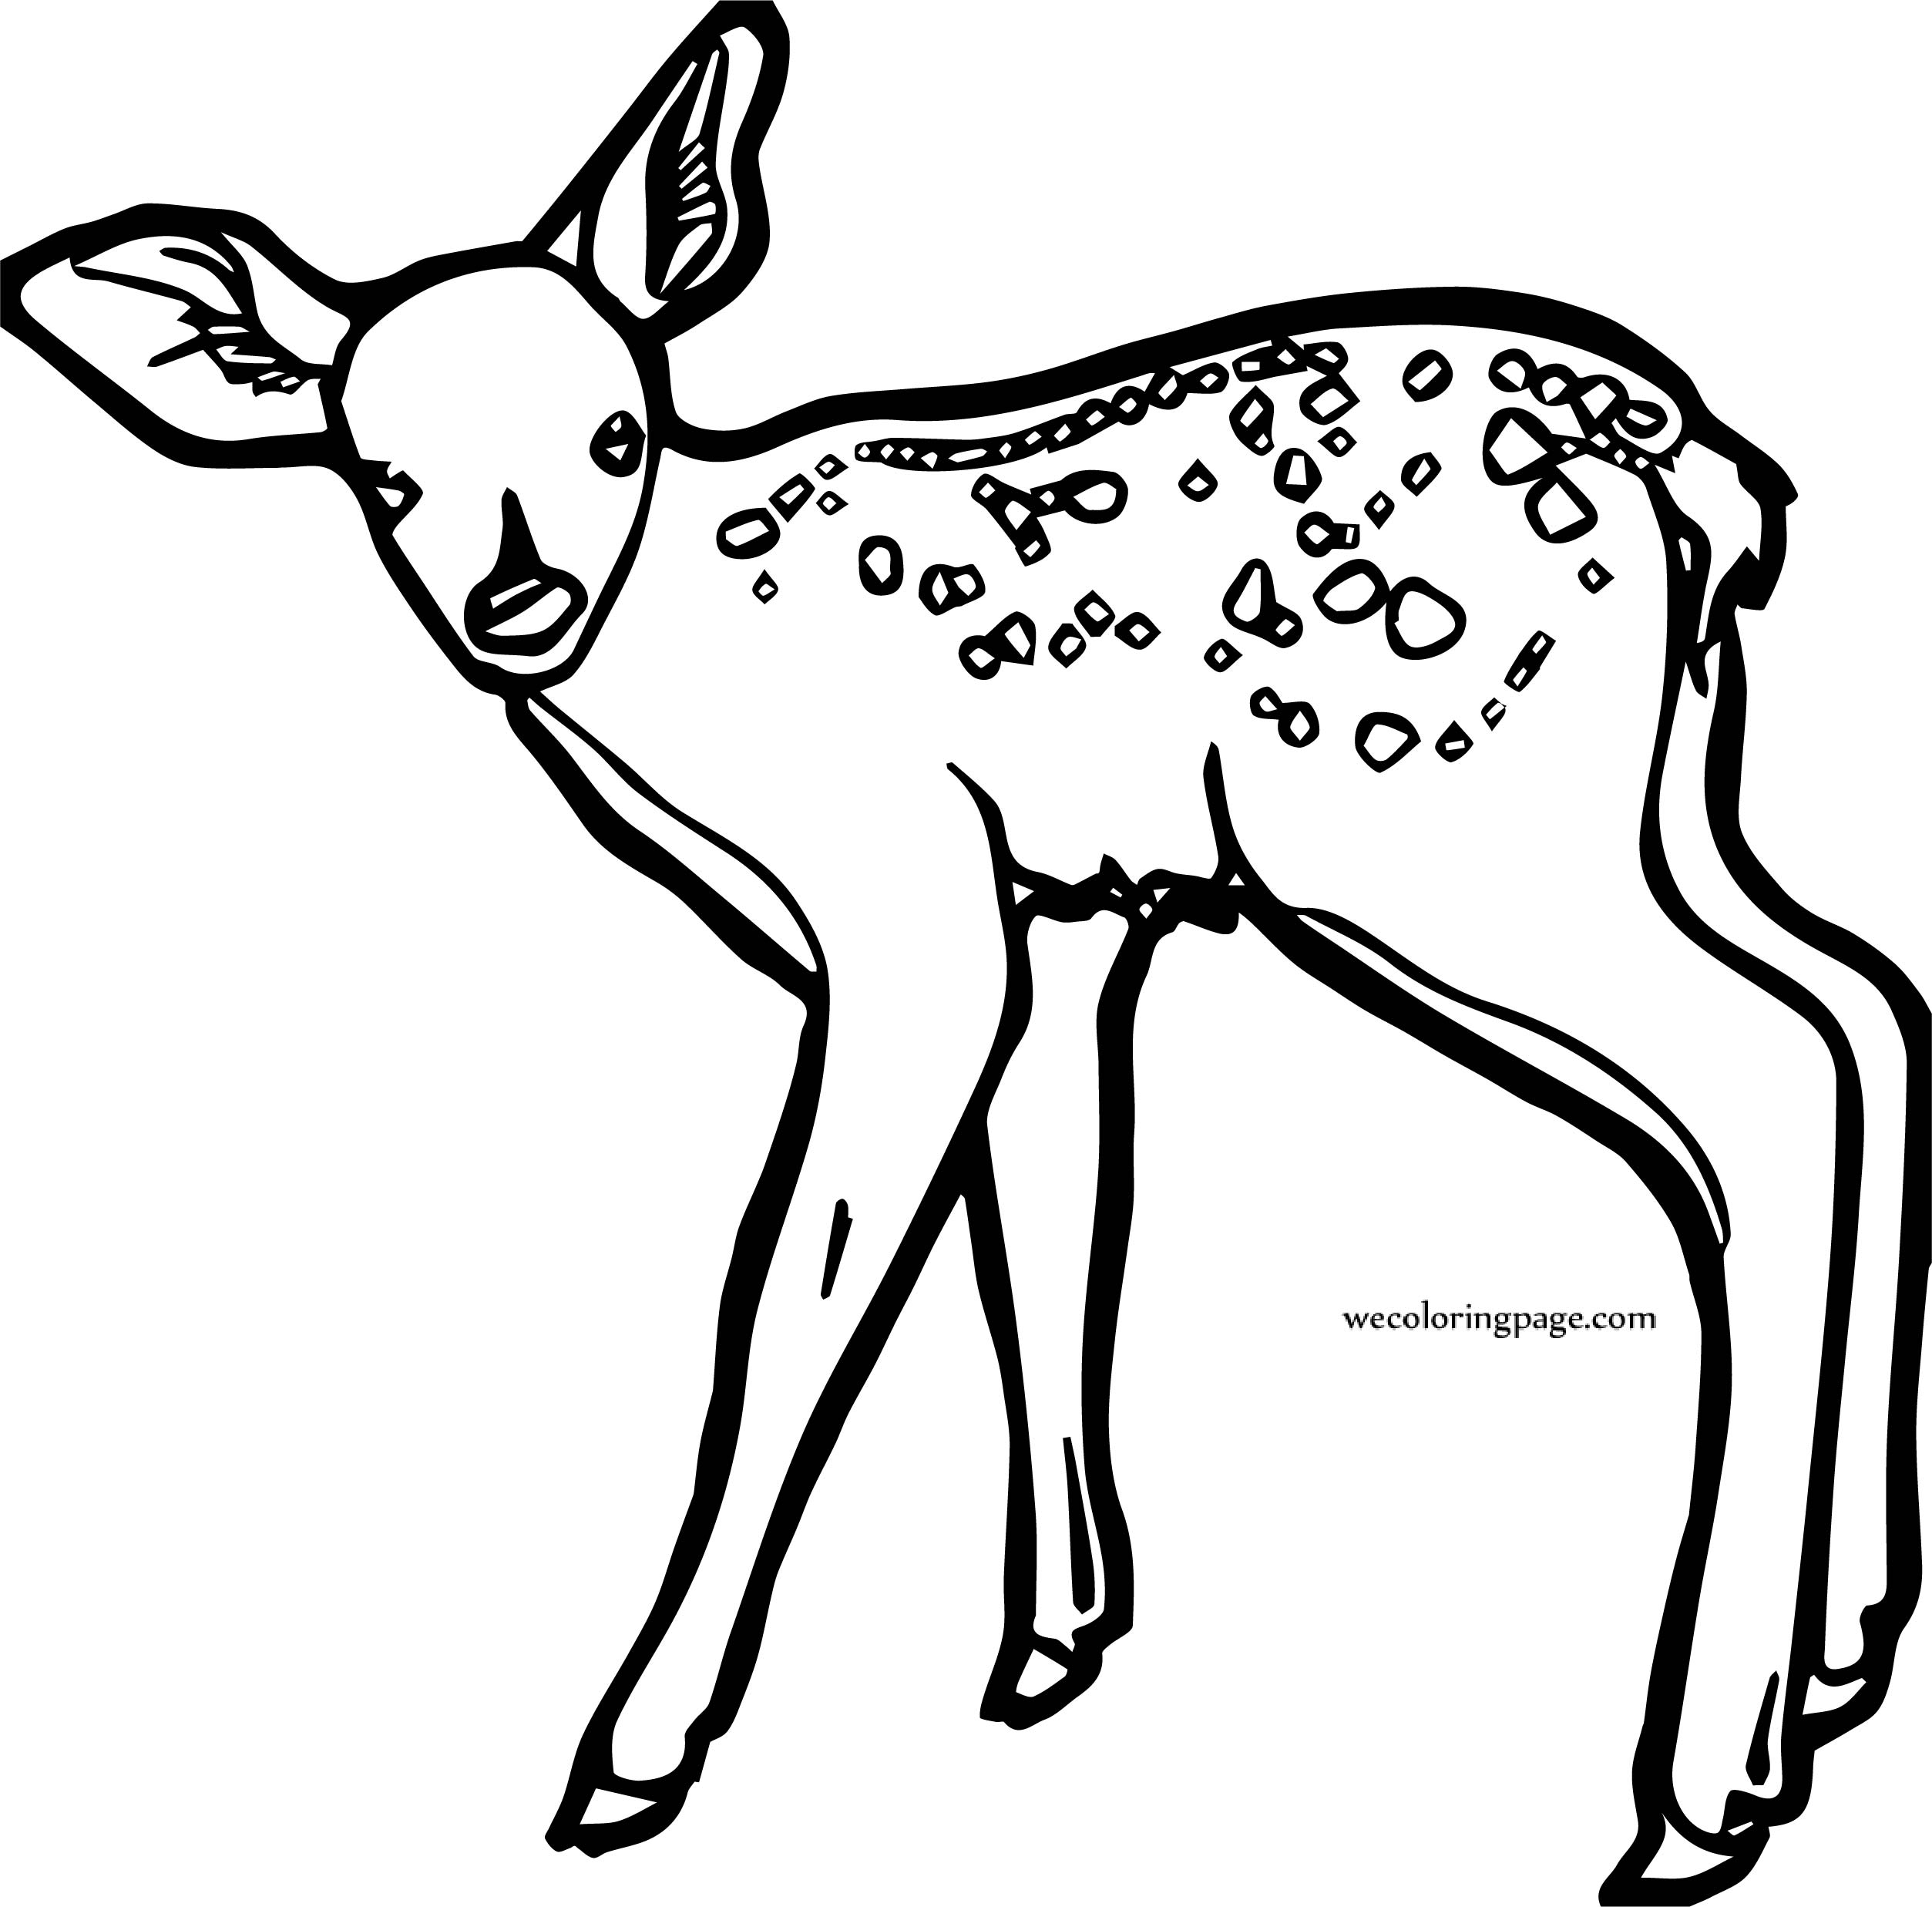 Fawn spotted deer coloring page for Deer coloring pages